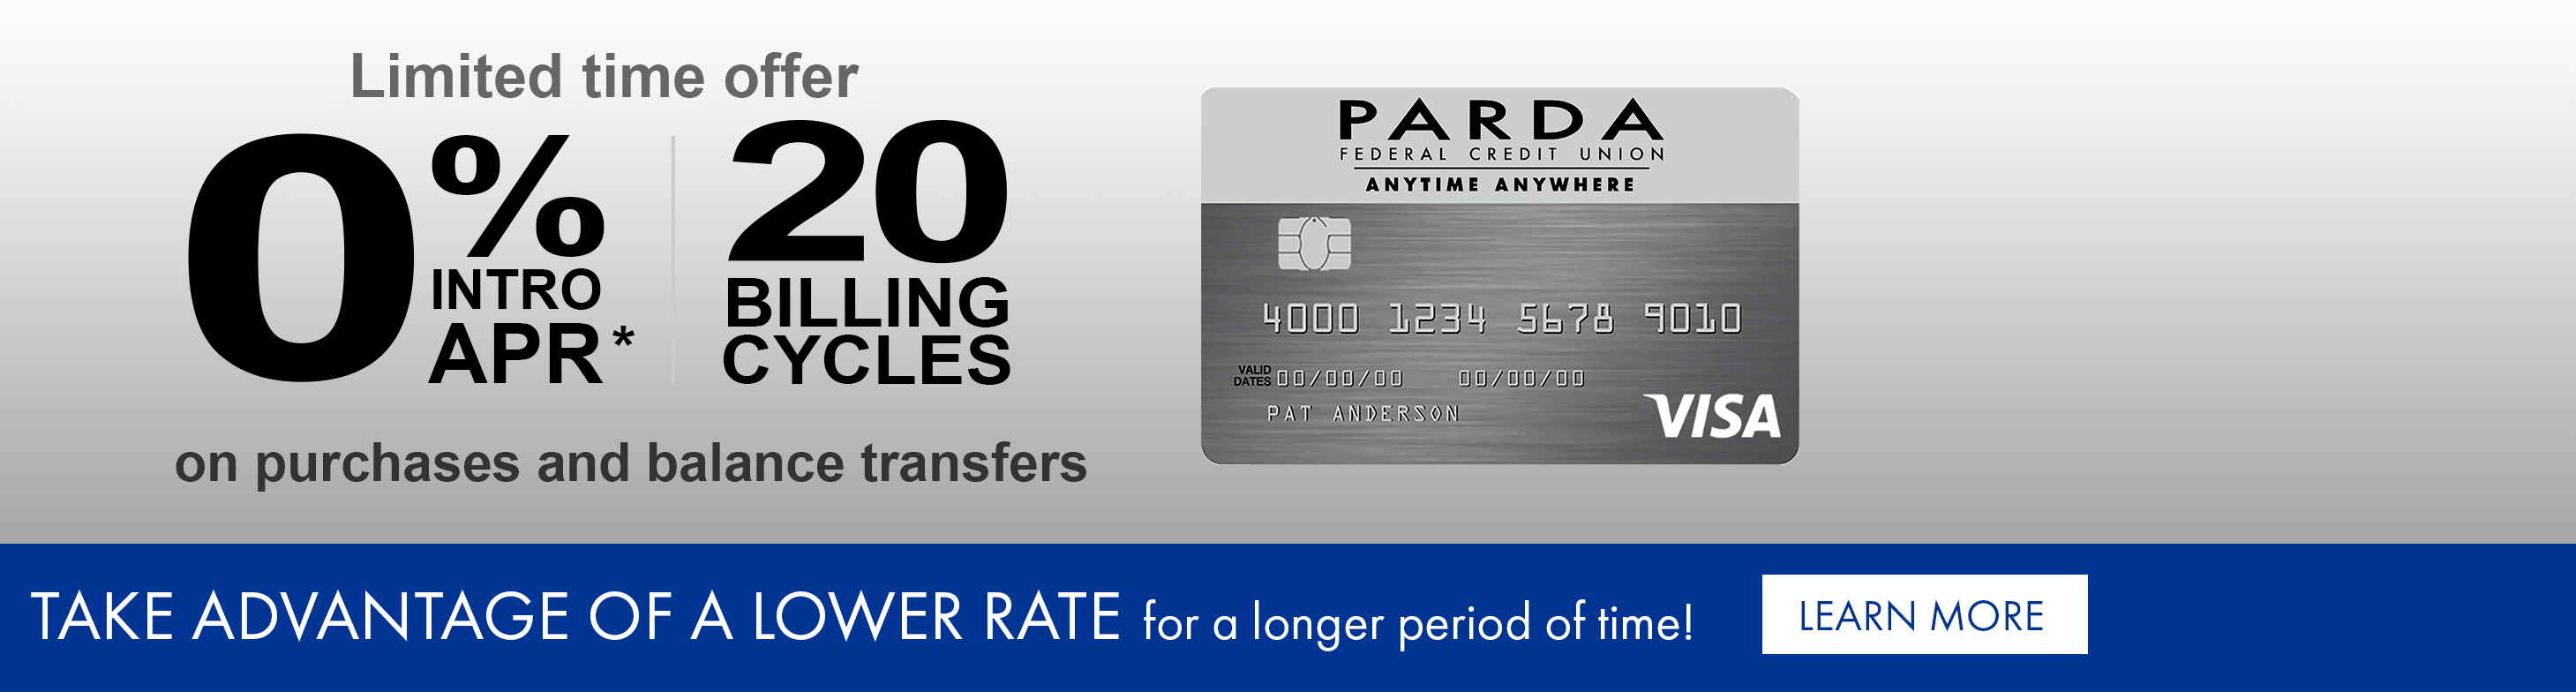 Take advantage of a lower interest rate for a longer period of time!